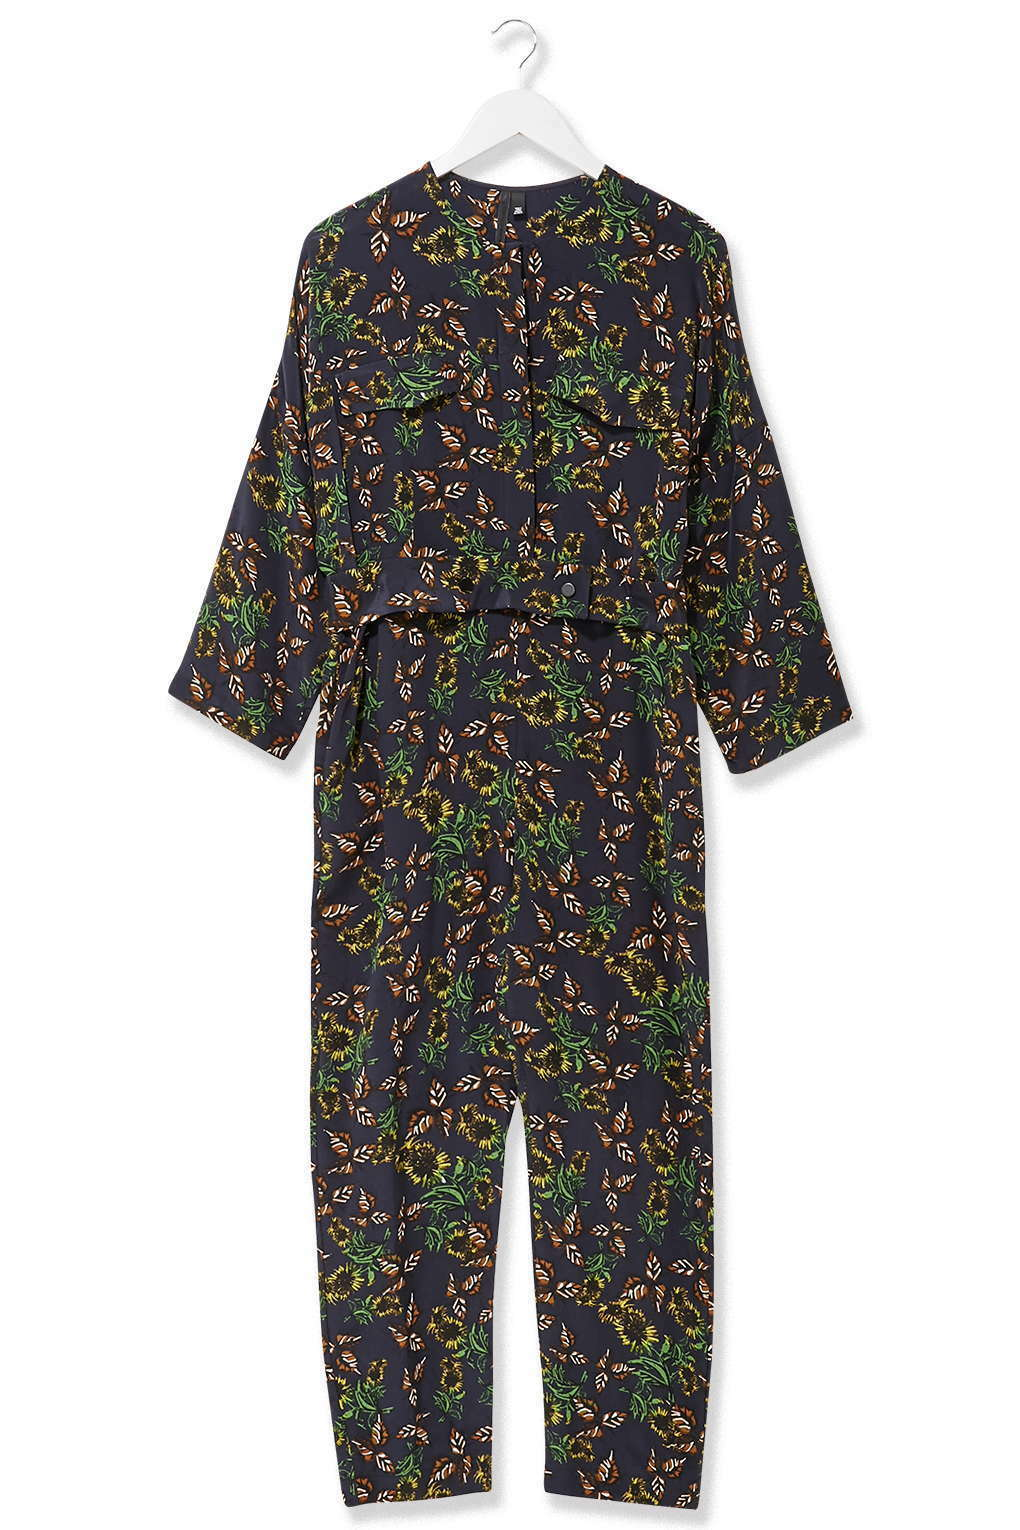 Topshop Boutique 100% Silk Falling Leaf Print Shirt Jumpsuit US 2 4